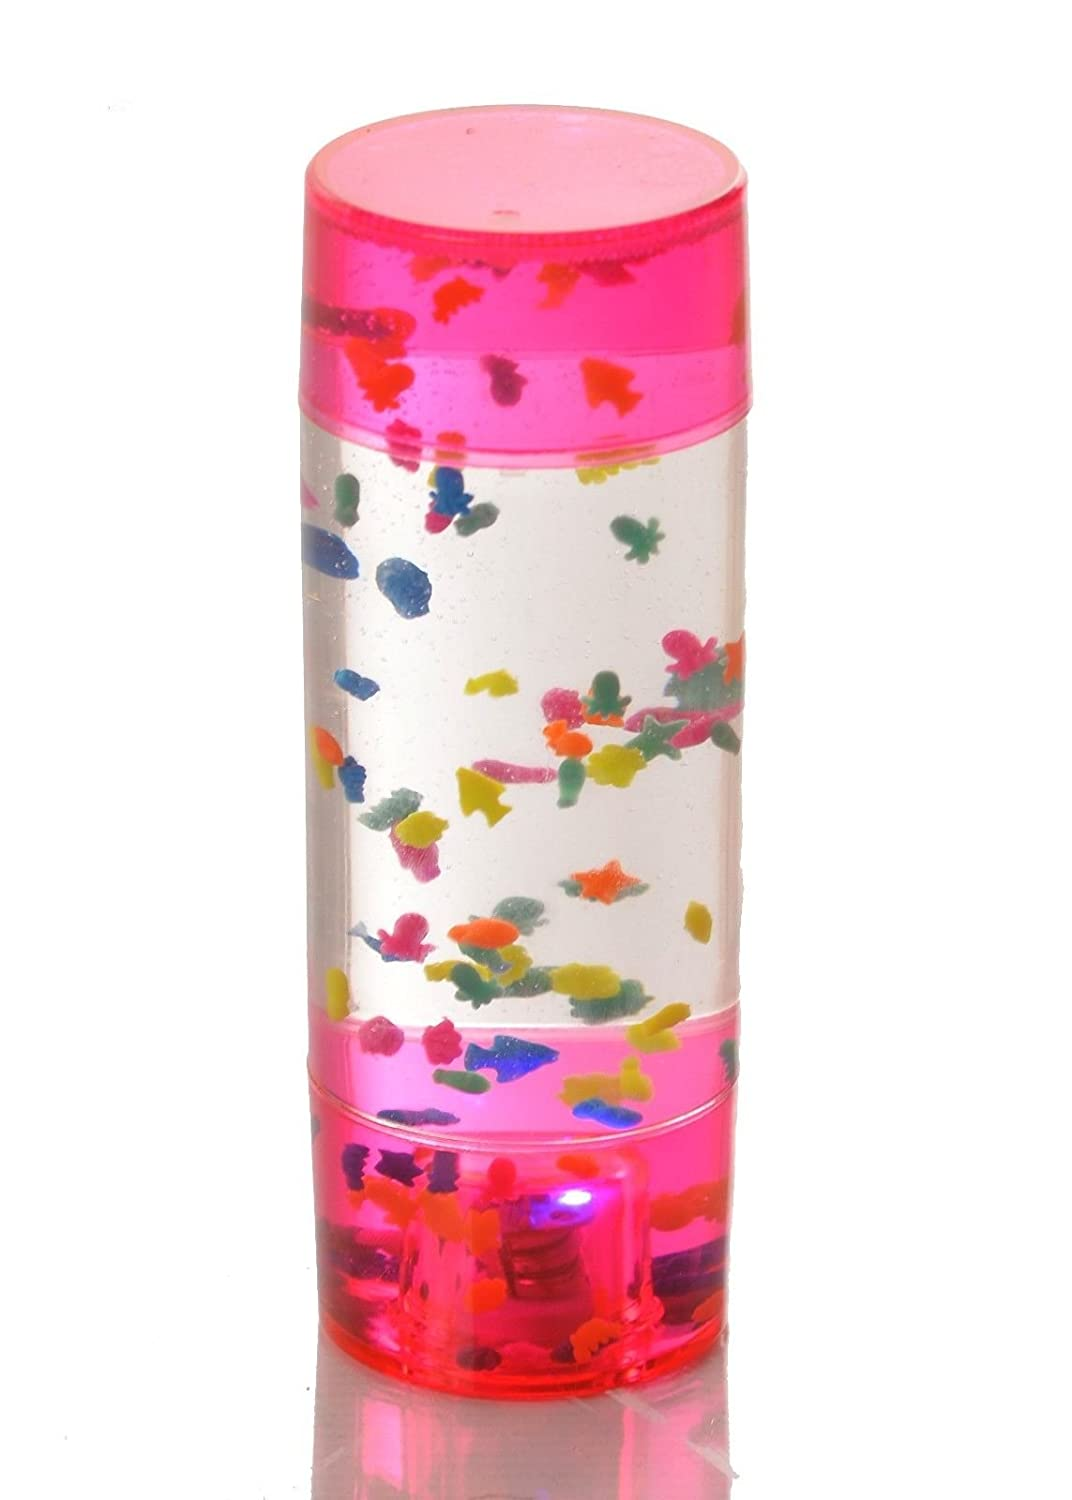 Light Up Fish Aquarium Toy Lamp - Small Handheld Sensory Light-Up Toy/Tool Special Needs & Educational Equipment, Assorted Colours PLAYLEARN